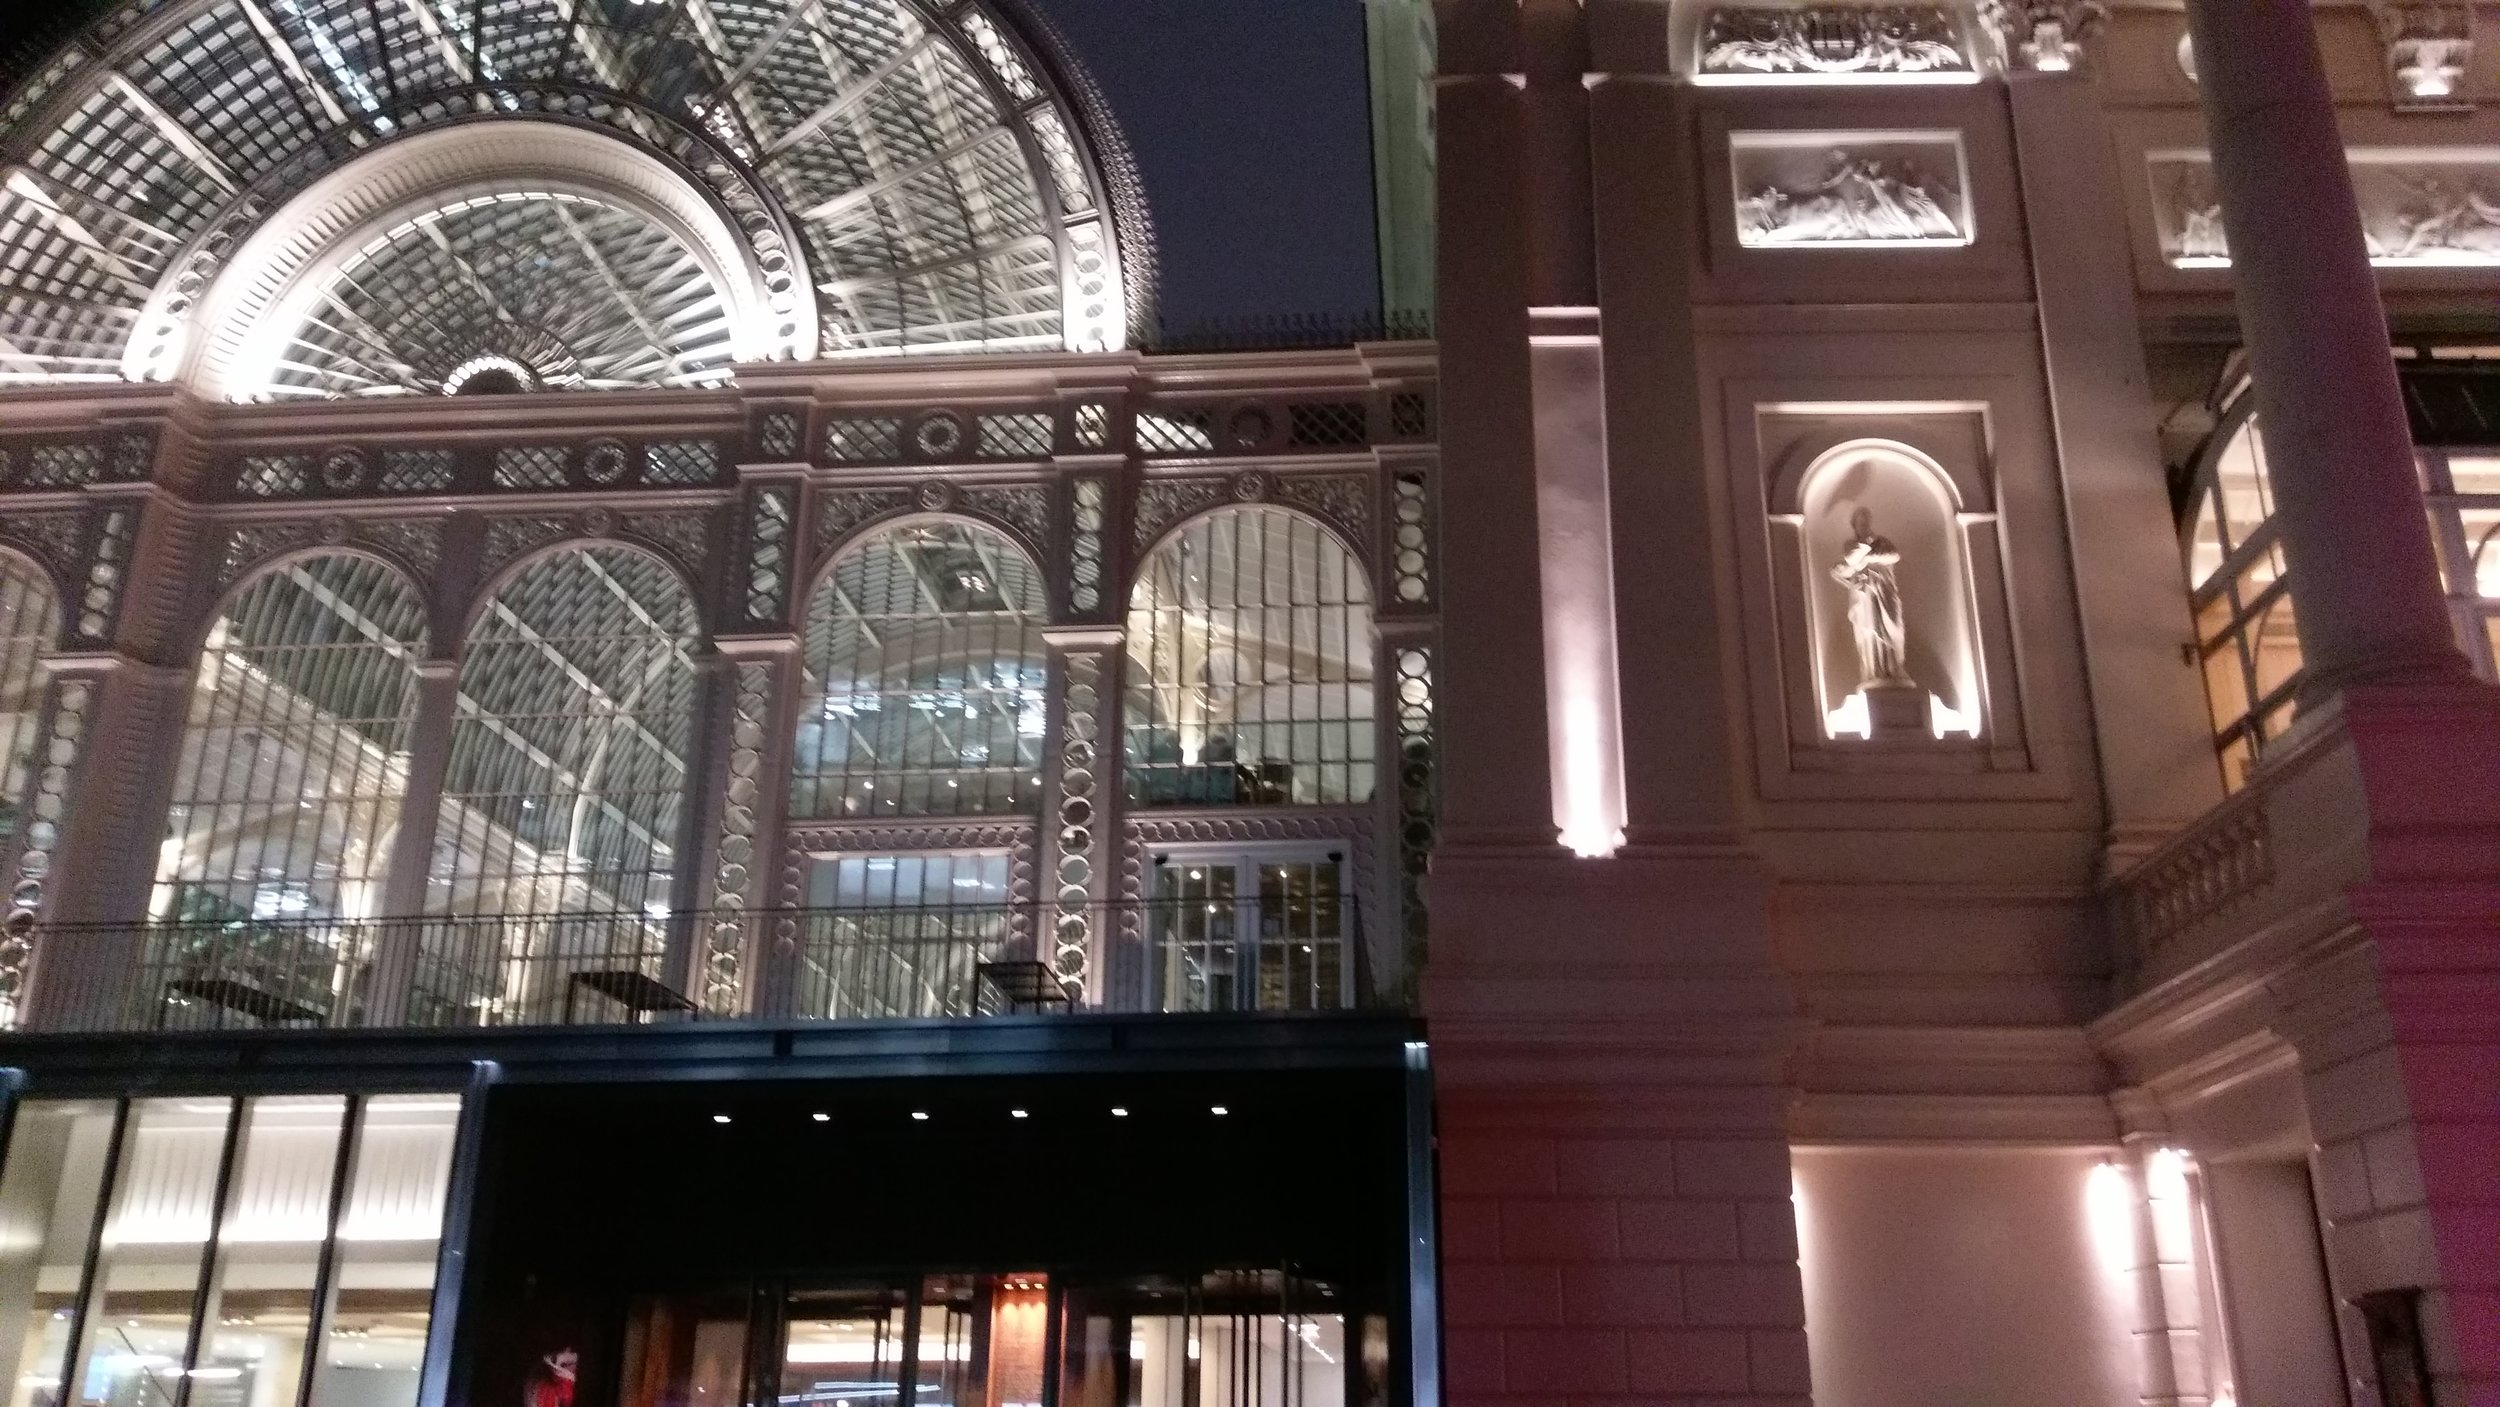 Royal Opera House - visited 05/02/2019